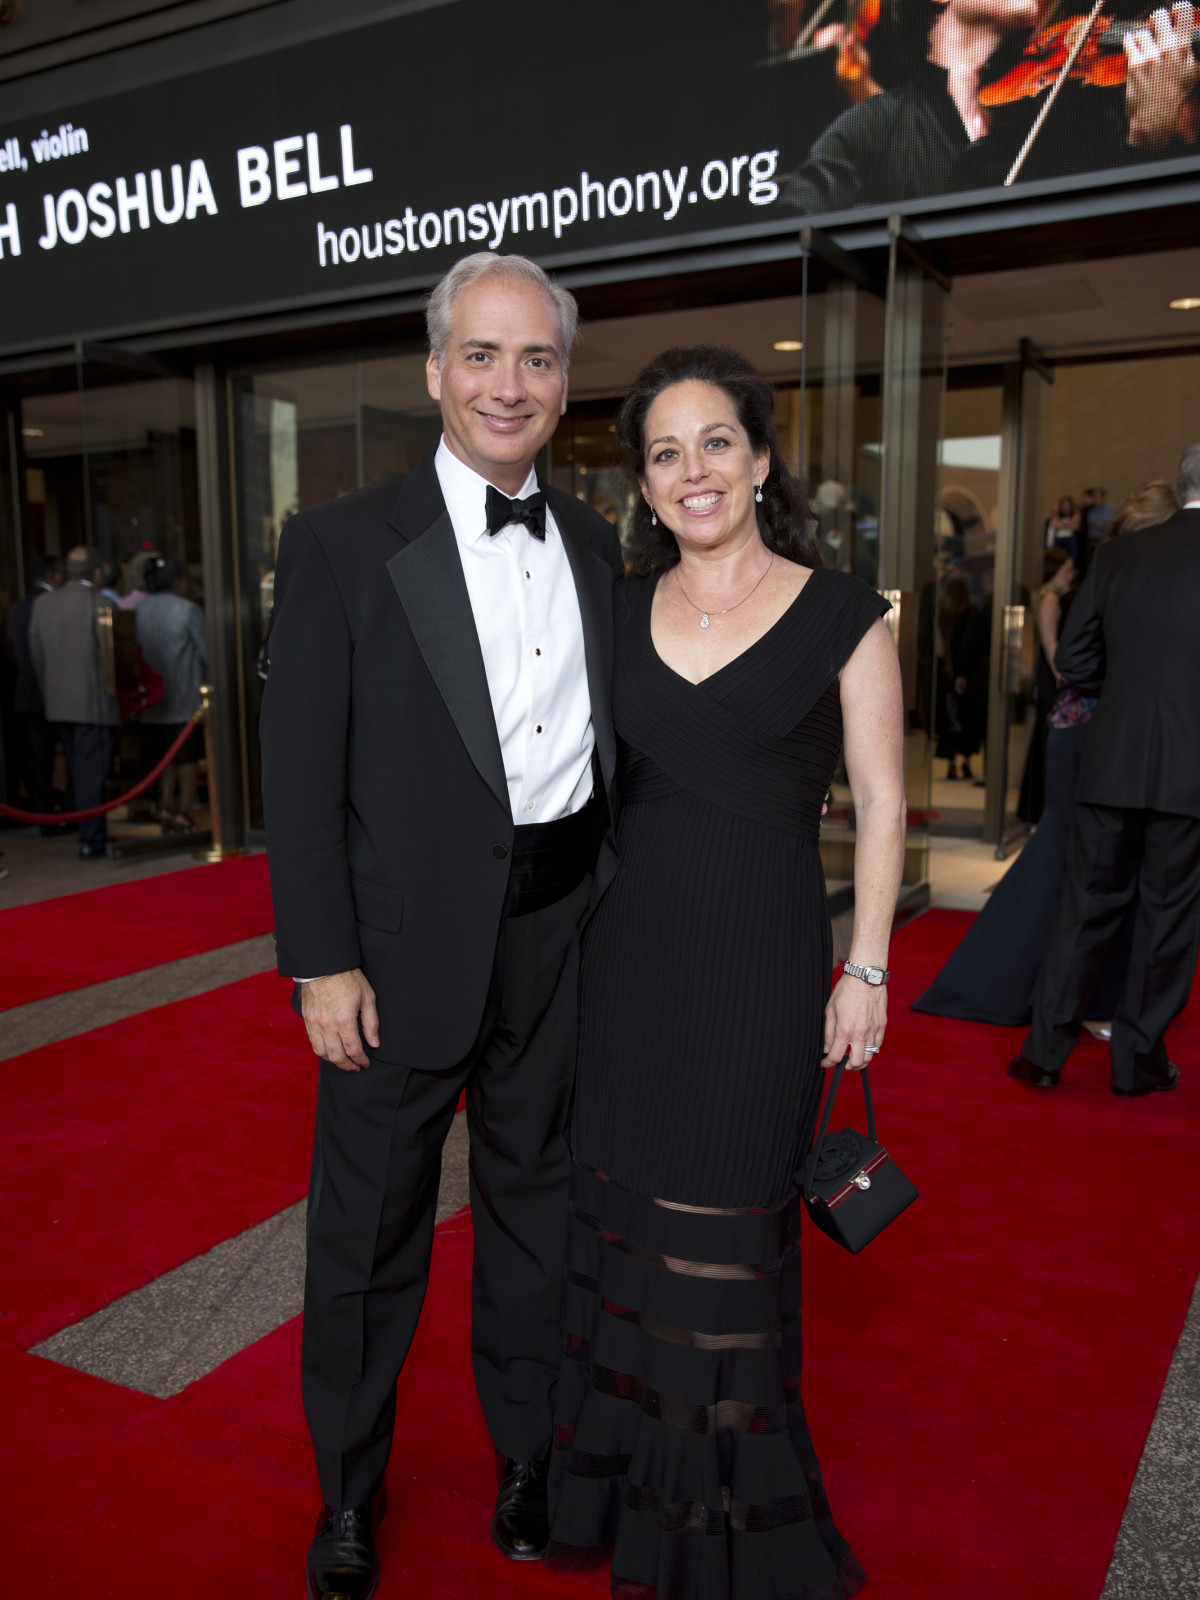 News, Shelby, Houston Symphony Opening Night, Sept. 2015, David Eenechud, Vivian Denechaud